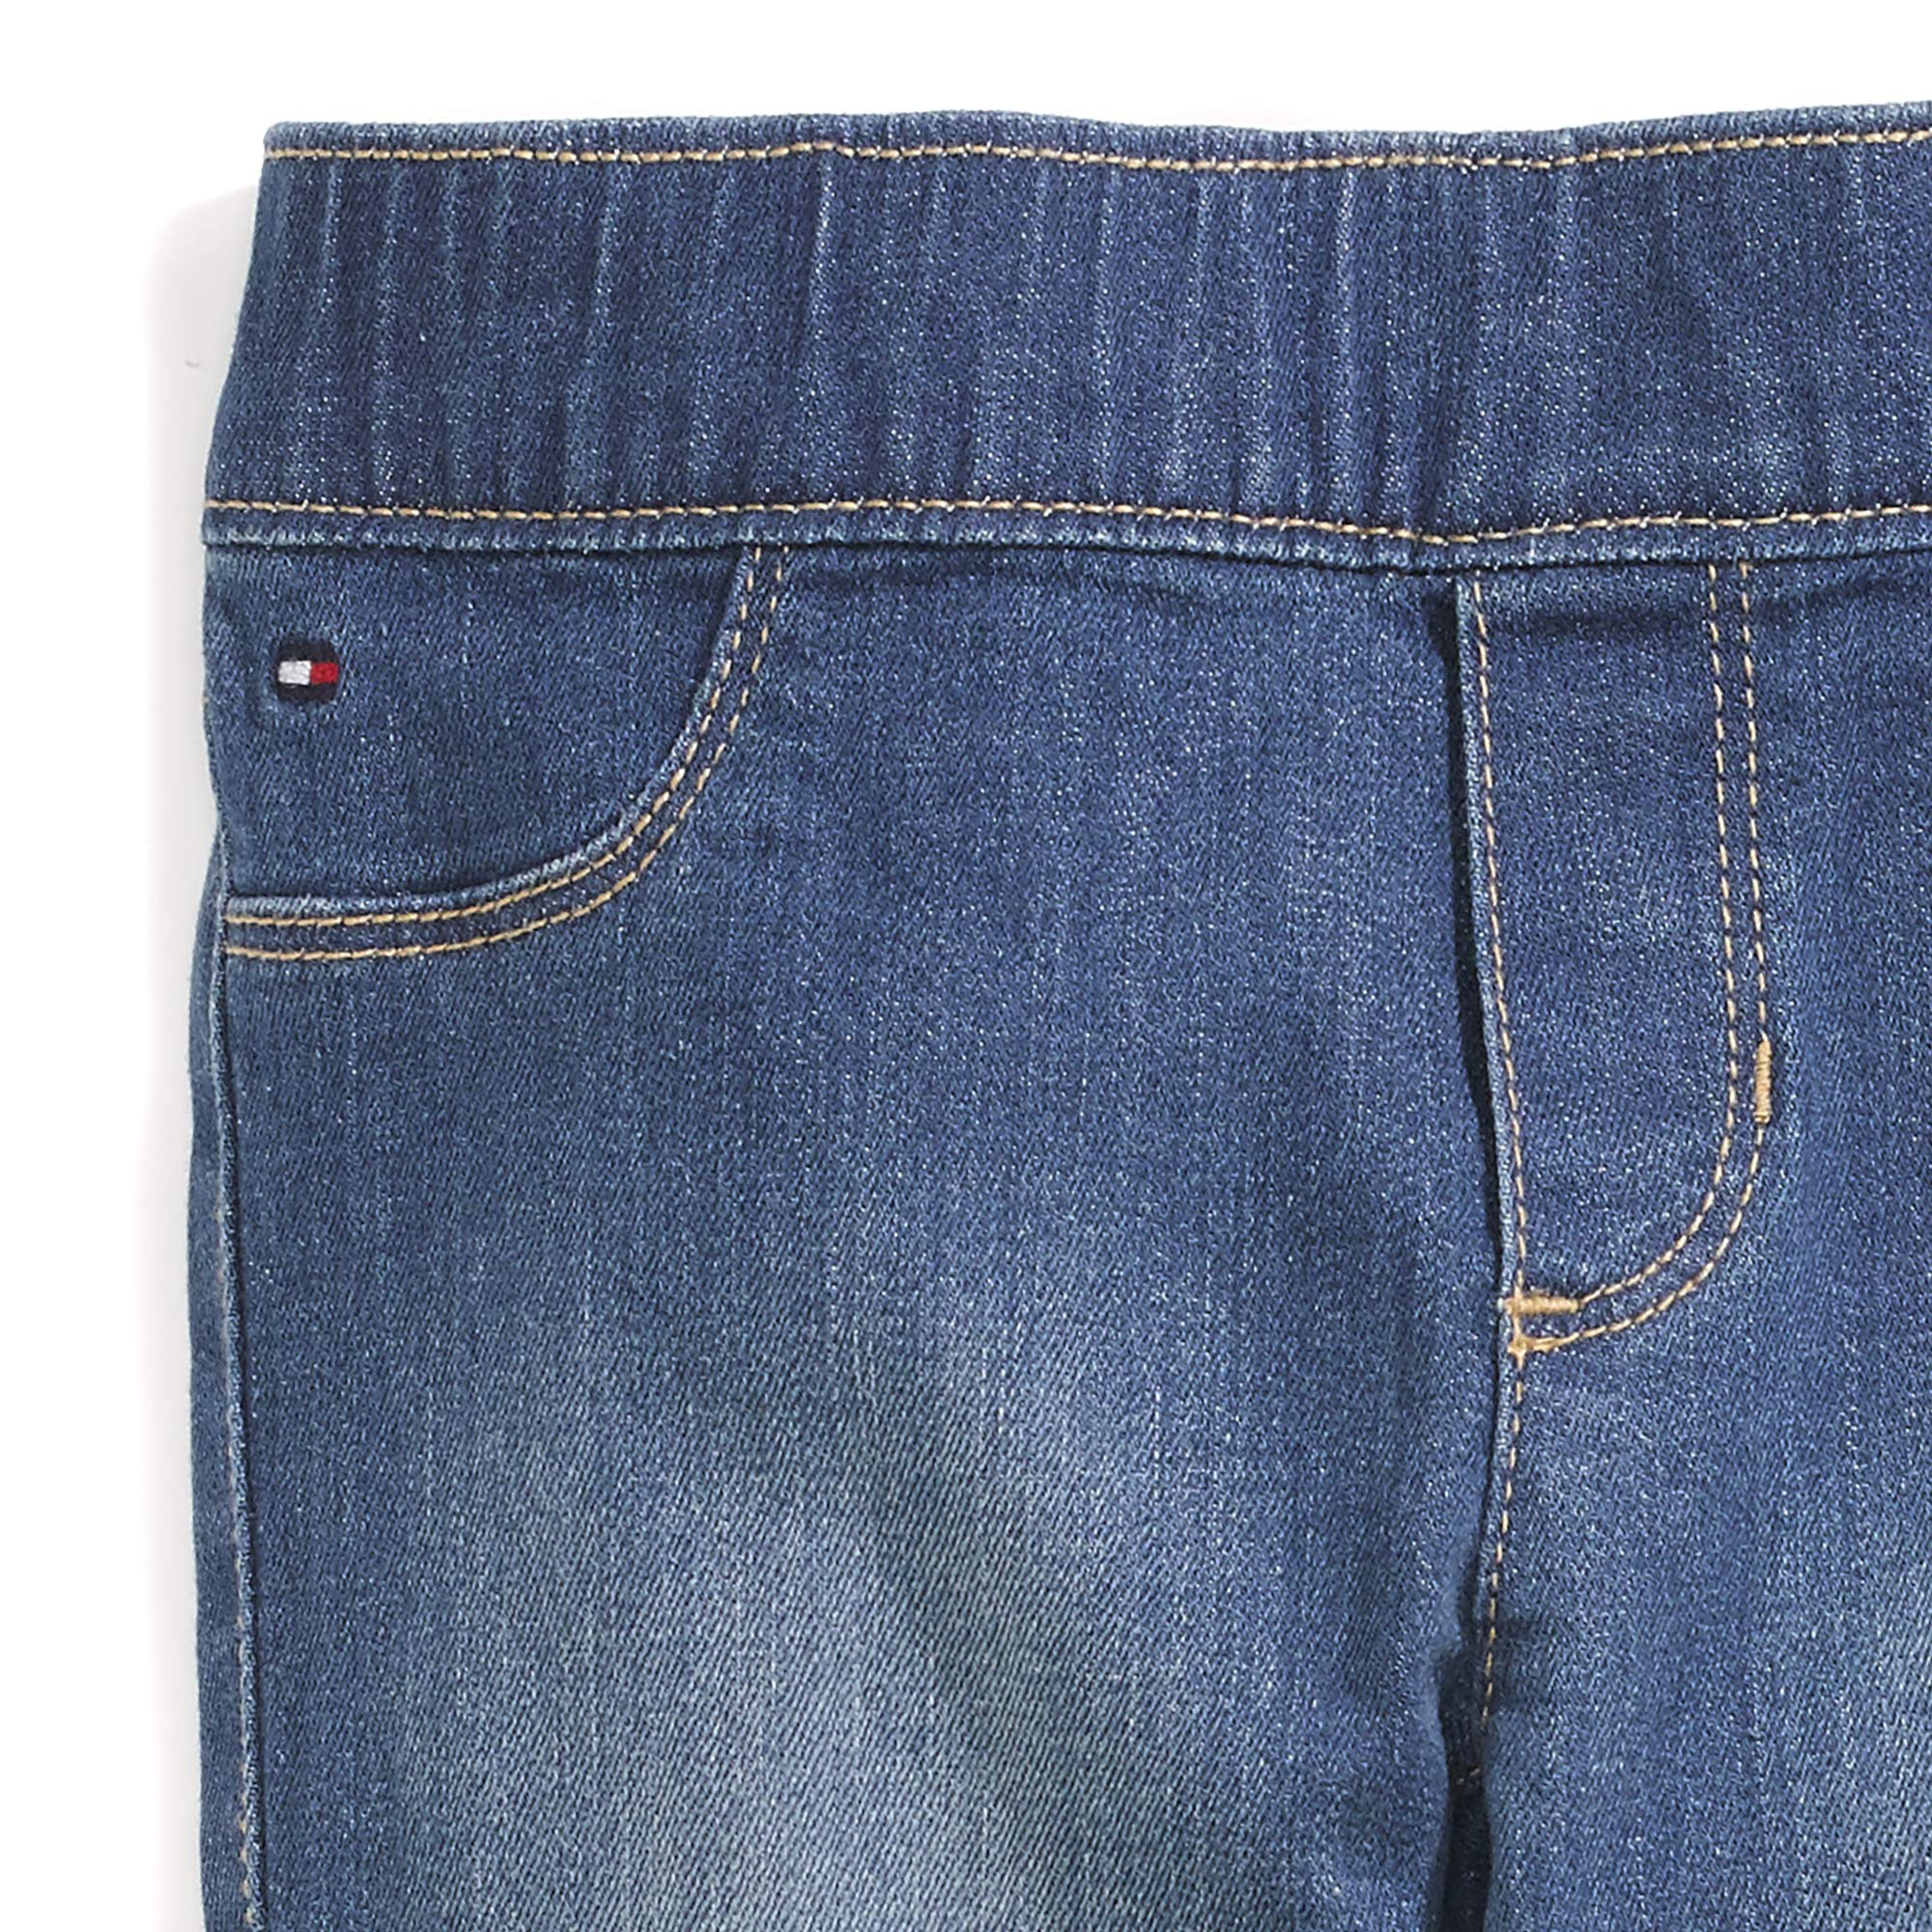 Tommy Hilfiger Girls' Adaptive Jegging Jeans with Elastic Waist and Adjustable Hems, KEITH wash 10 by Tommy Hilfiger (Image #3)